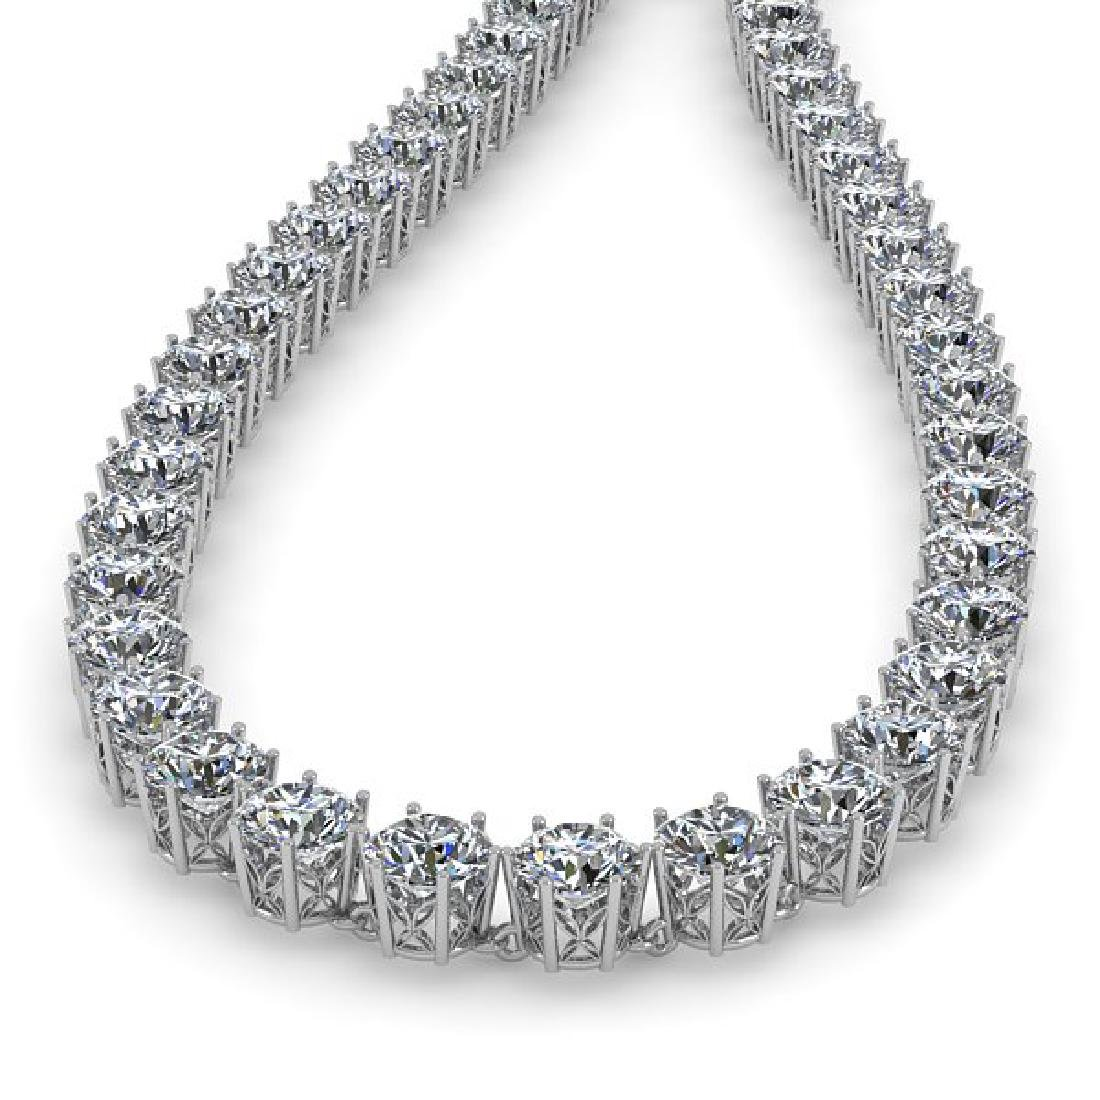 29 CTW SI Certified Diamond Necklace 18K White Gold - 2